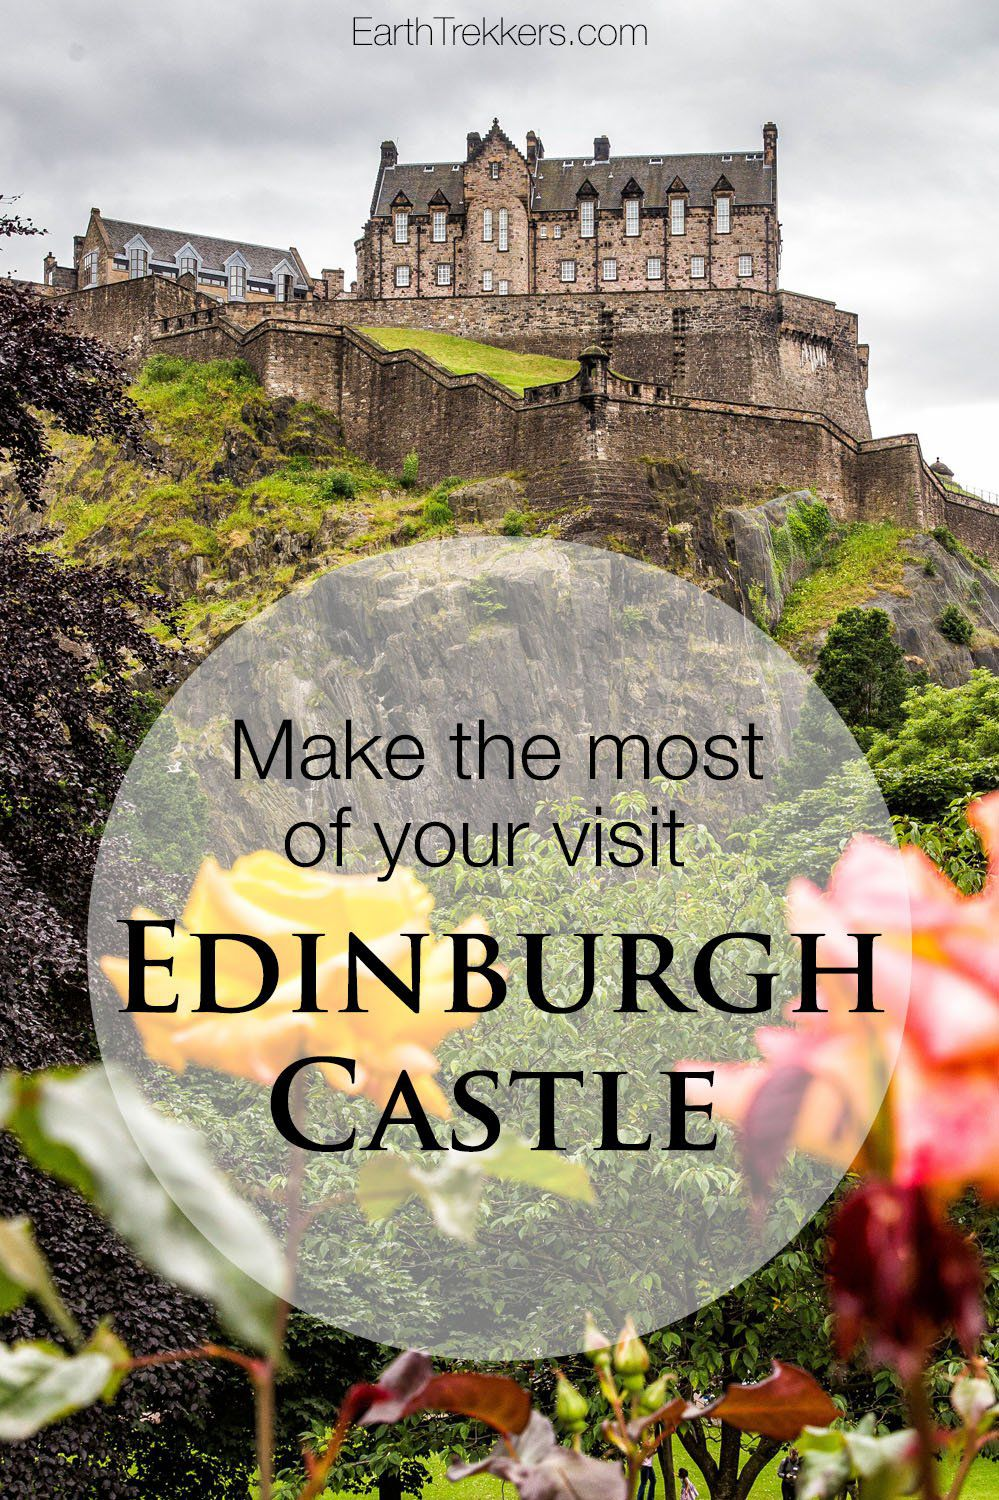 How to have the best experience at Edinburgh Castle